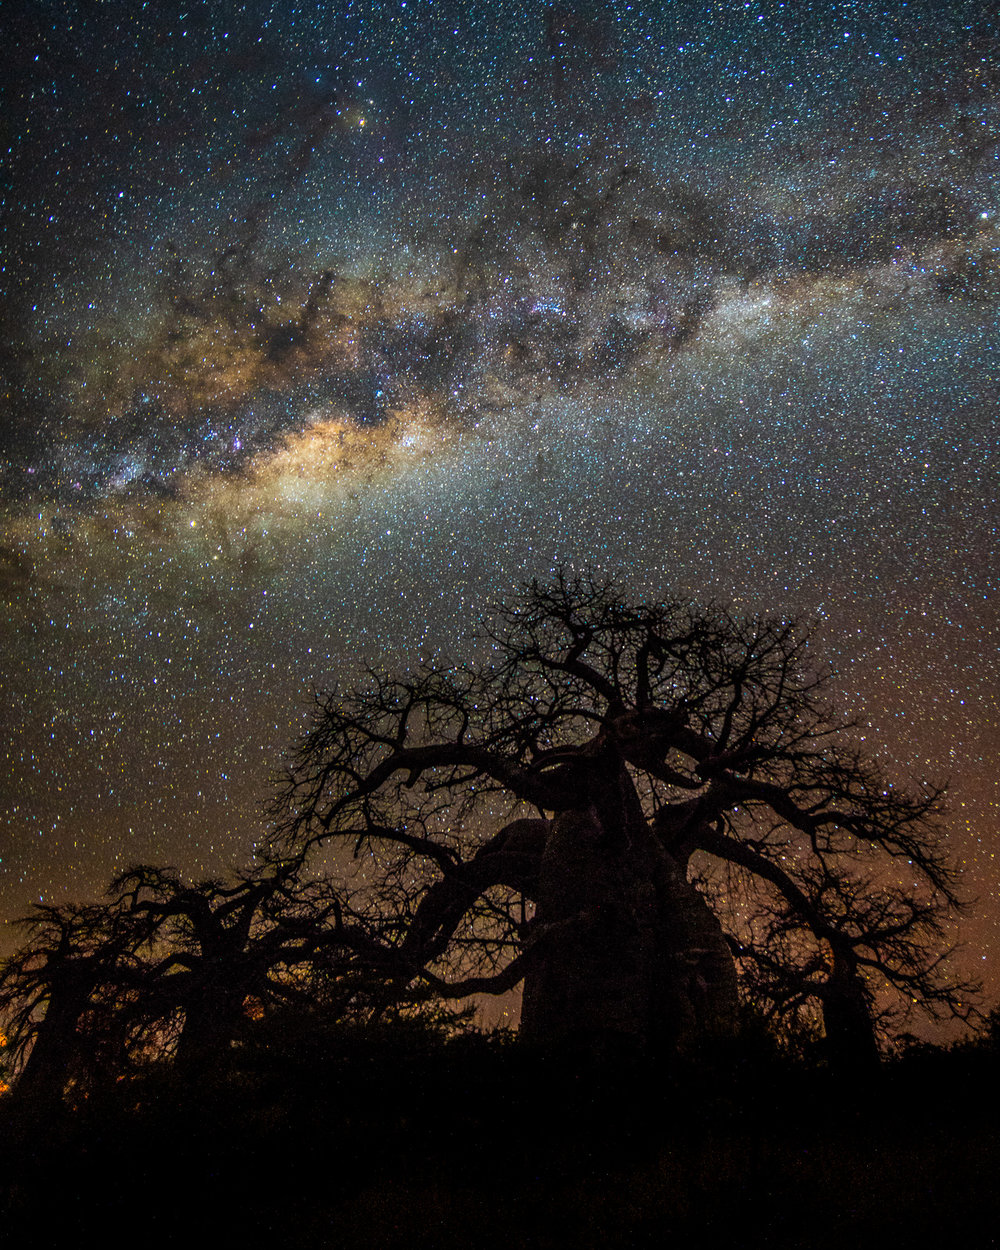 muench-workshops-baobabs-africa-milky-way.jpg